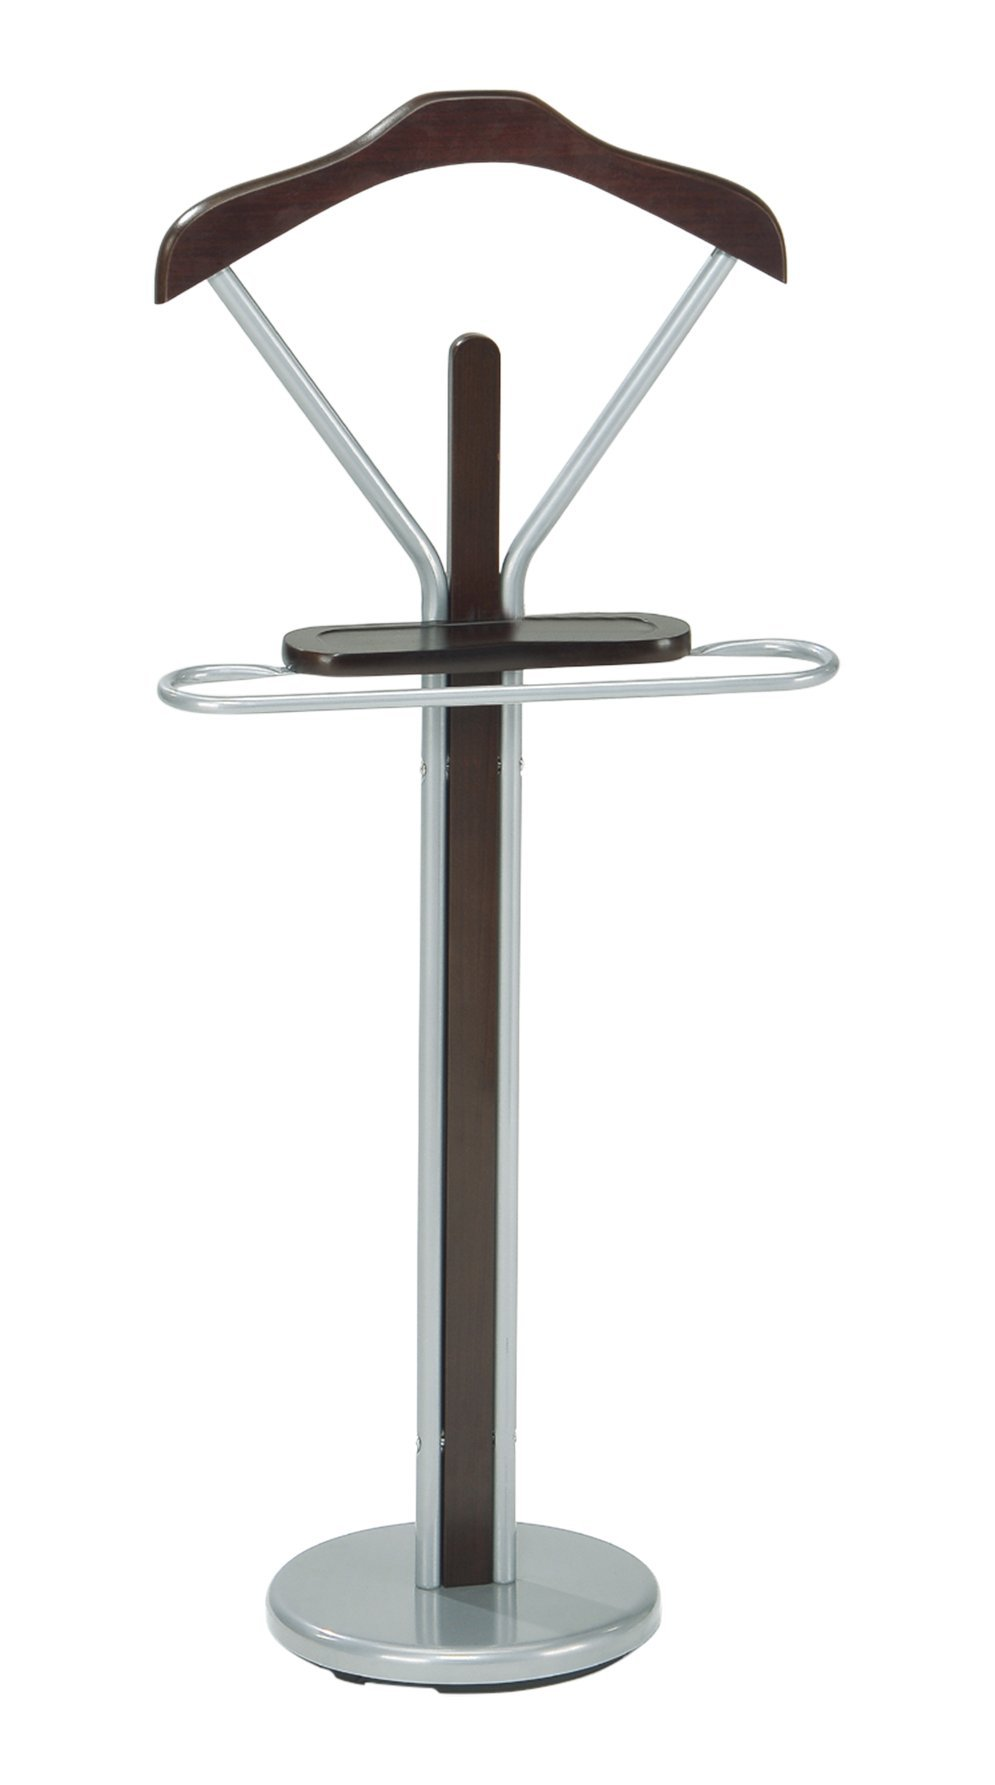 InRoom Designs CH-4089 Kings Brand Silver Finish Wood and Metal Suit Valet Rack Stand Organizer, Walnut by InRoom Designs (Image #4)